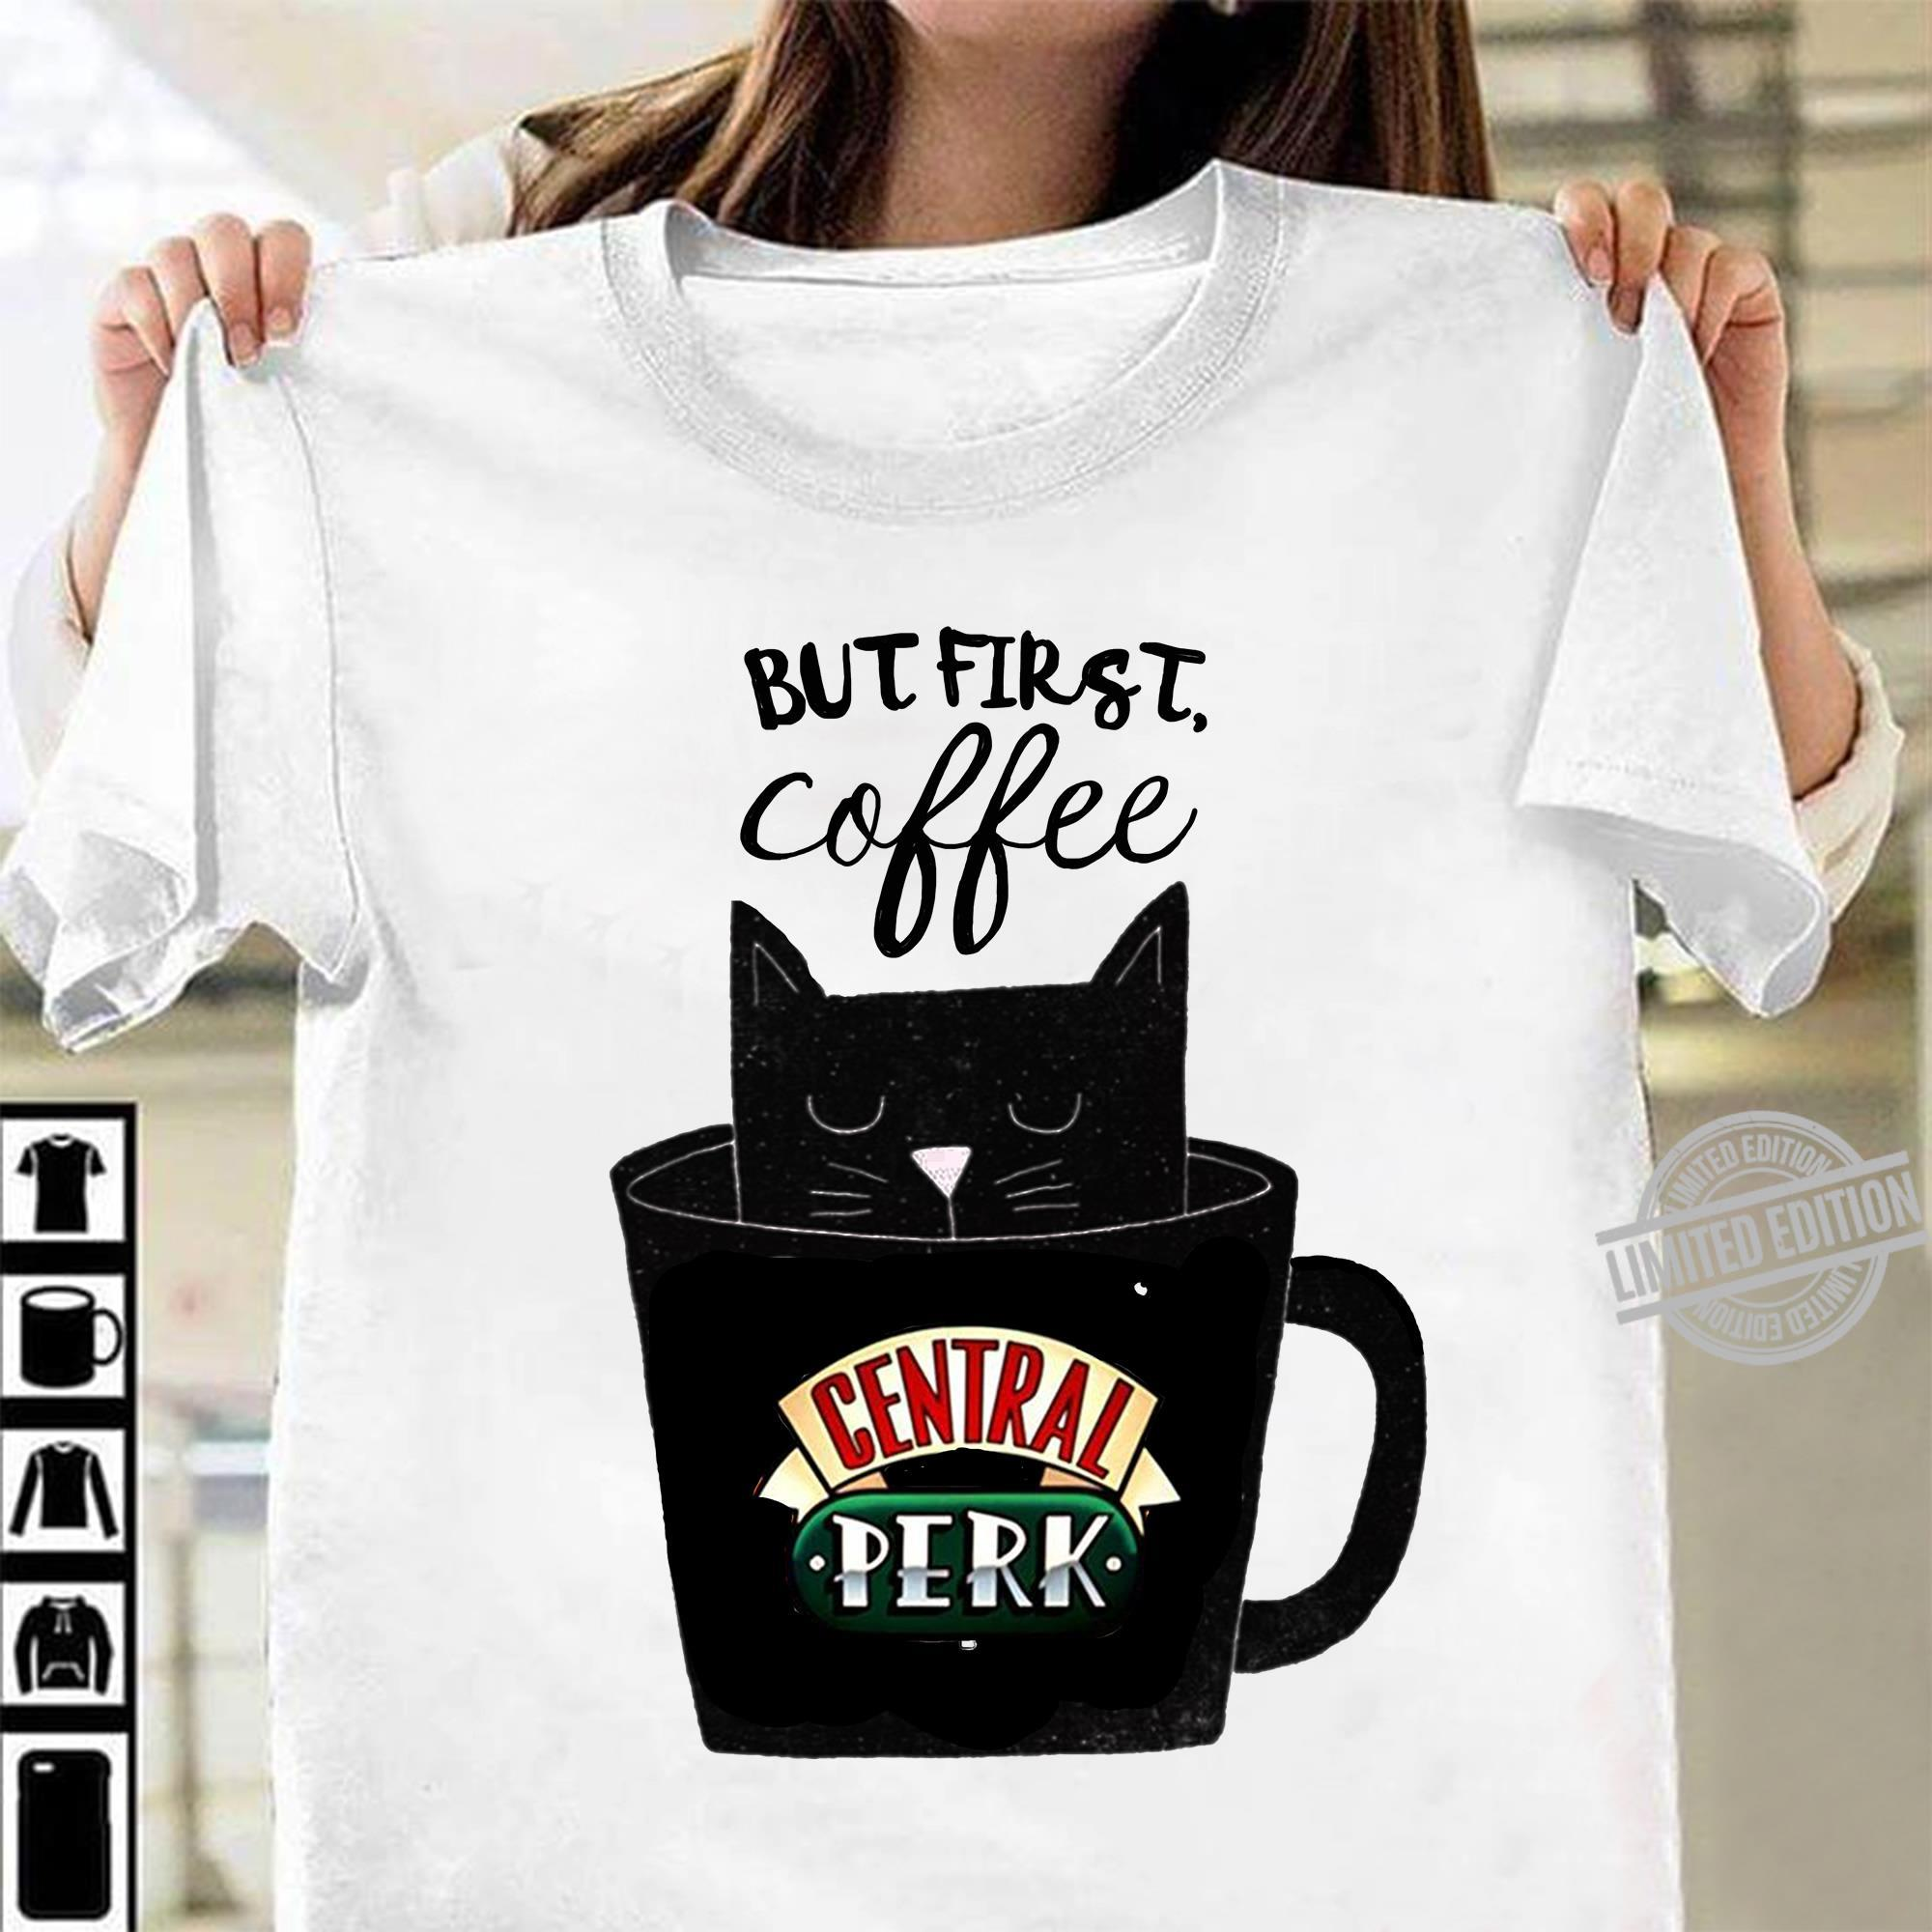 But First Coffee Central Perk Shirt.crdownload